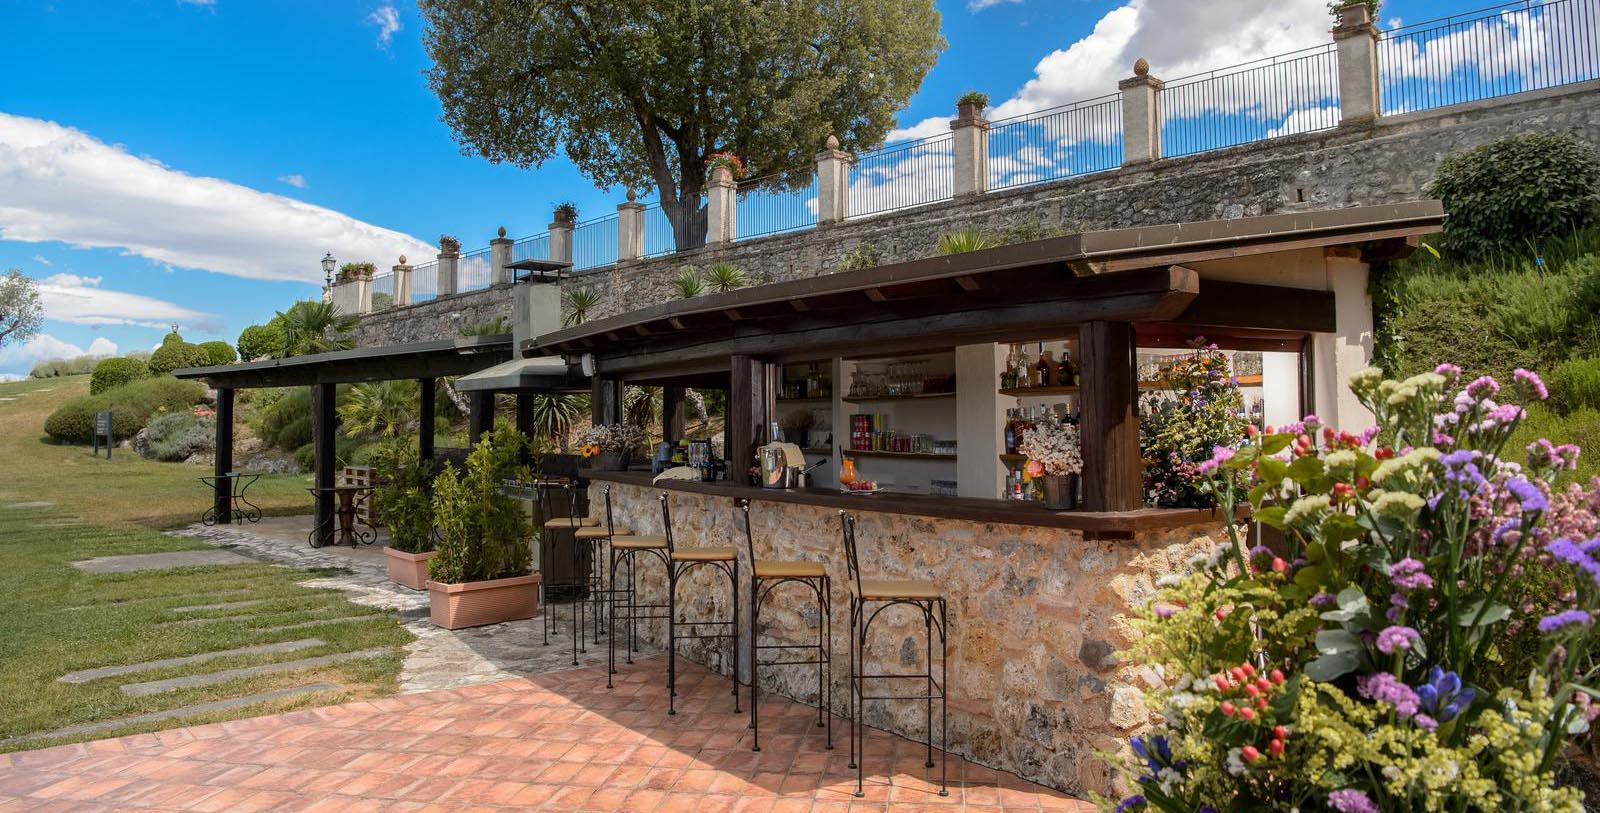 Image of Outdoor Bar La Bagnaia Golf & Spa Resort Siena, Curio Collection by Hilton, 11th Century, Member of Historic Hotels Worldwide, in Siena, Italy, Explore